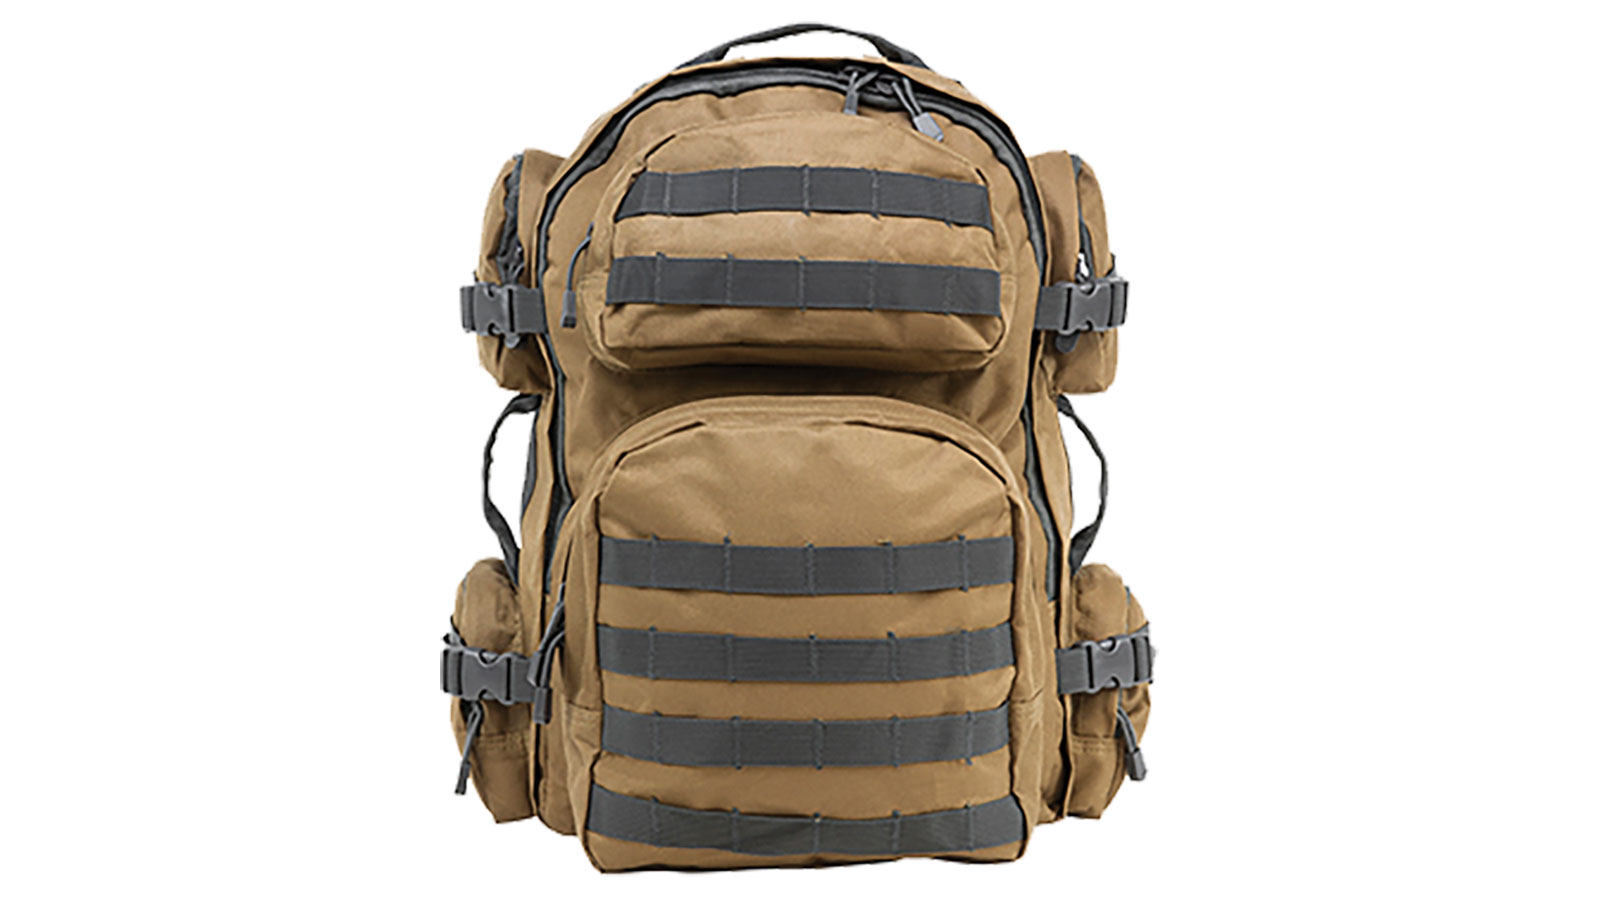 NC Star Tactical Backpack Tan with Urban Gray Trim